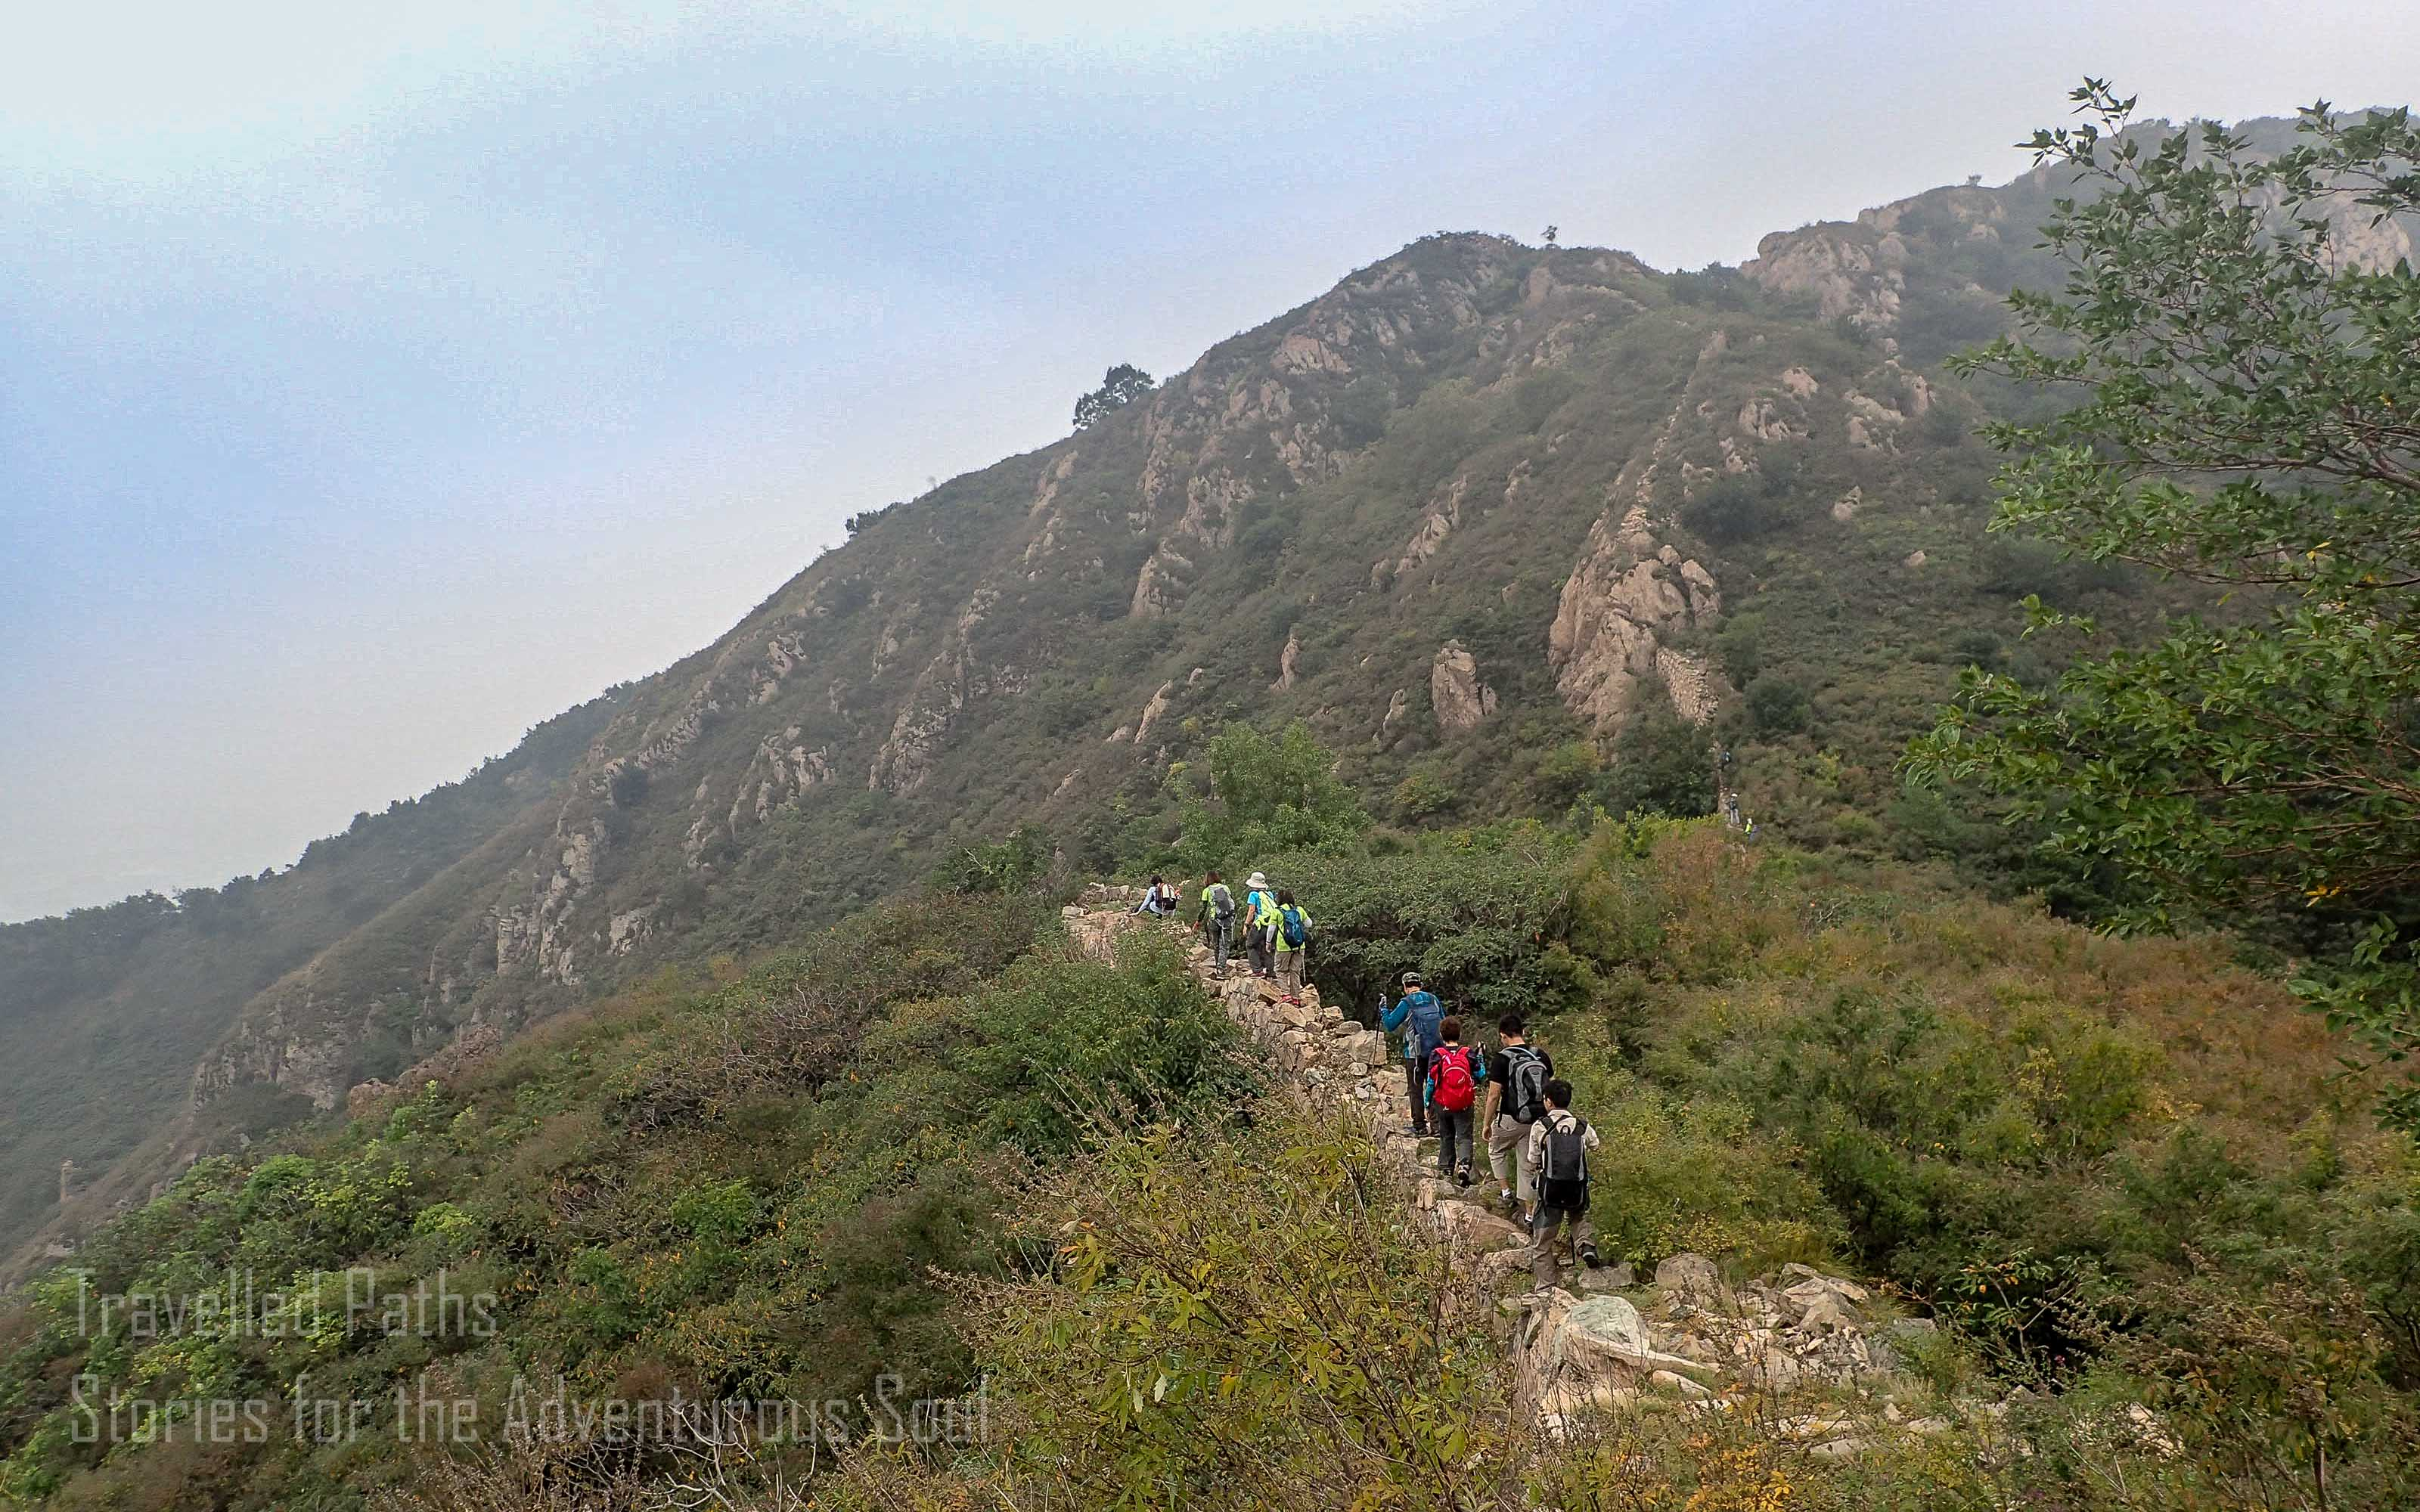 Buddhist Temple of the Sea of Wisdom Běijīng, The Great Wall of China Hike 金秋漫步 – From JiaoShan to SanDaoGuan